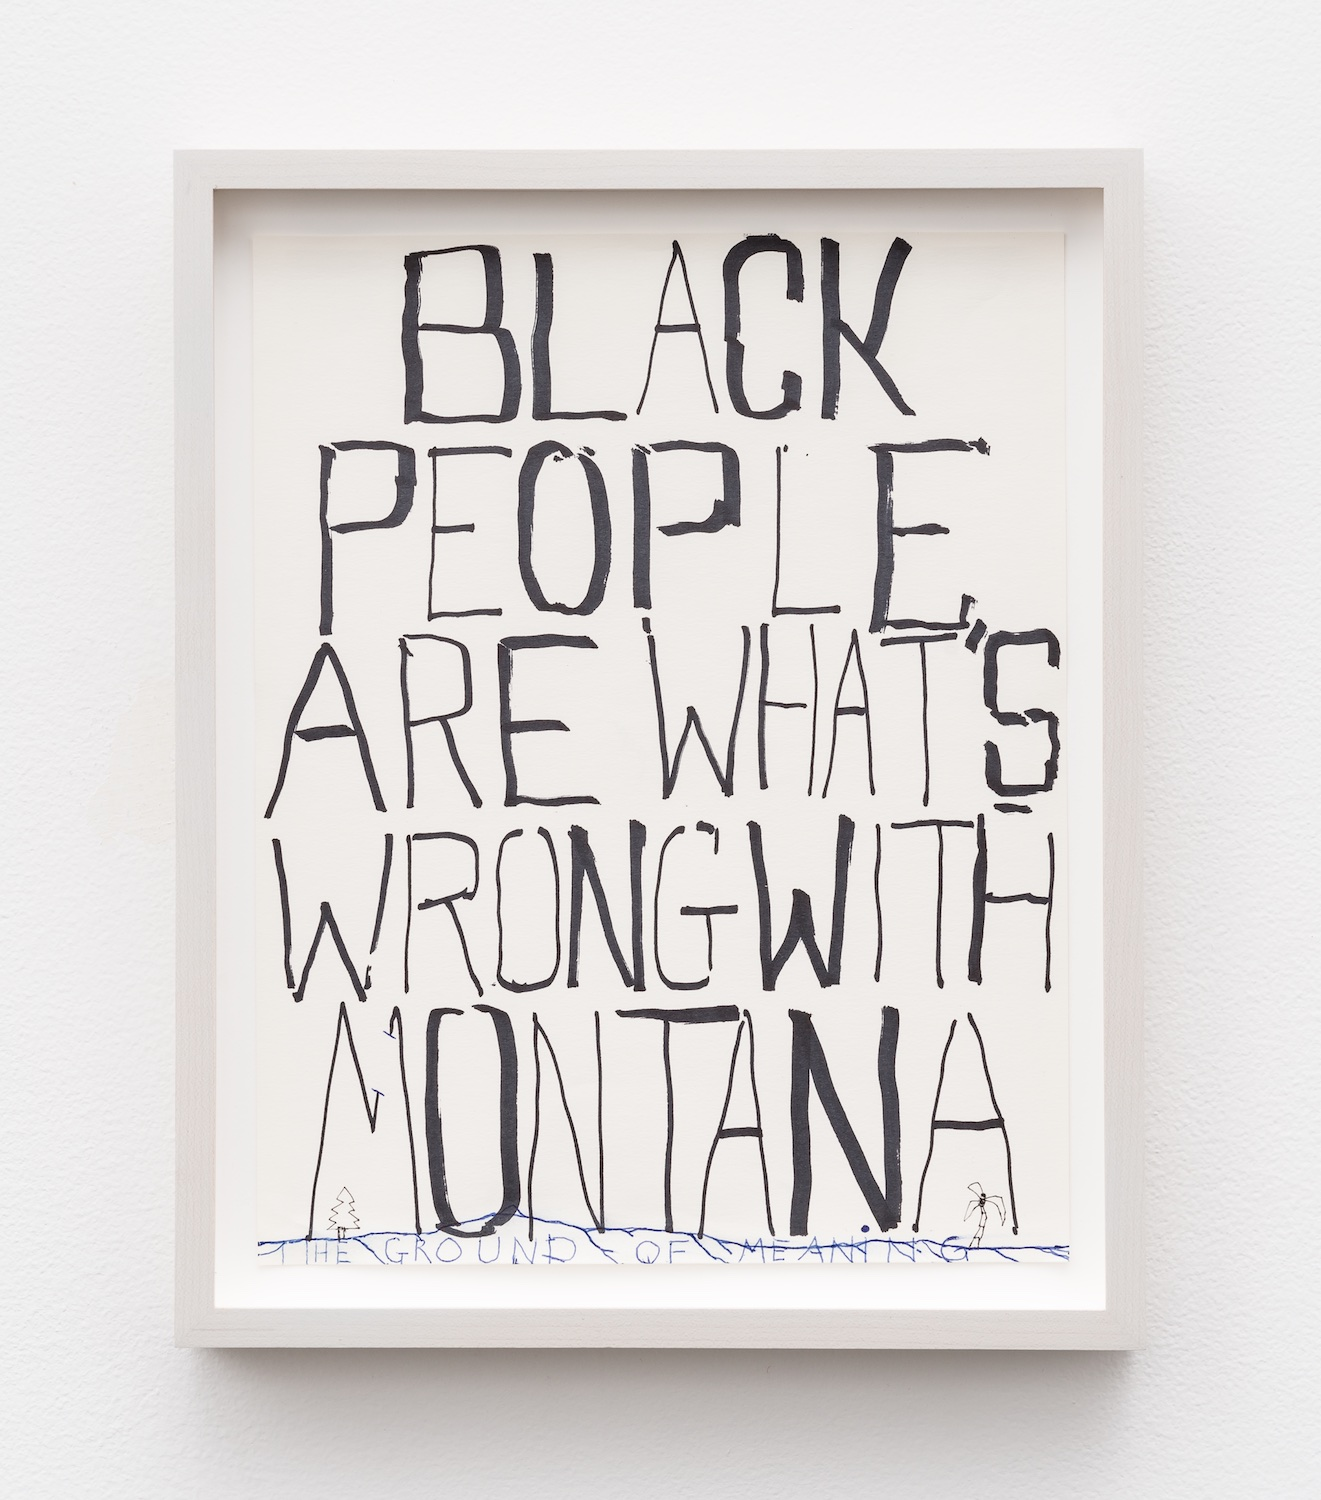 William Pope.L  Black People Are What's Wrong With Montana  2010 Mixed media on paper 11 ⅜h x 9w in WP006